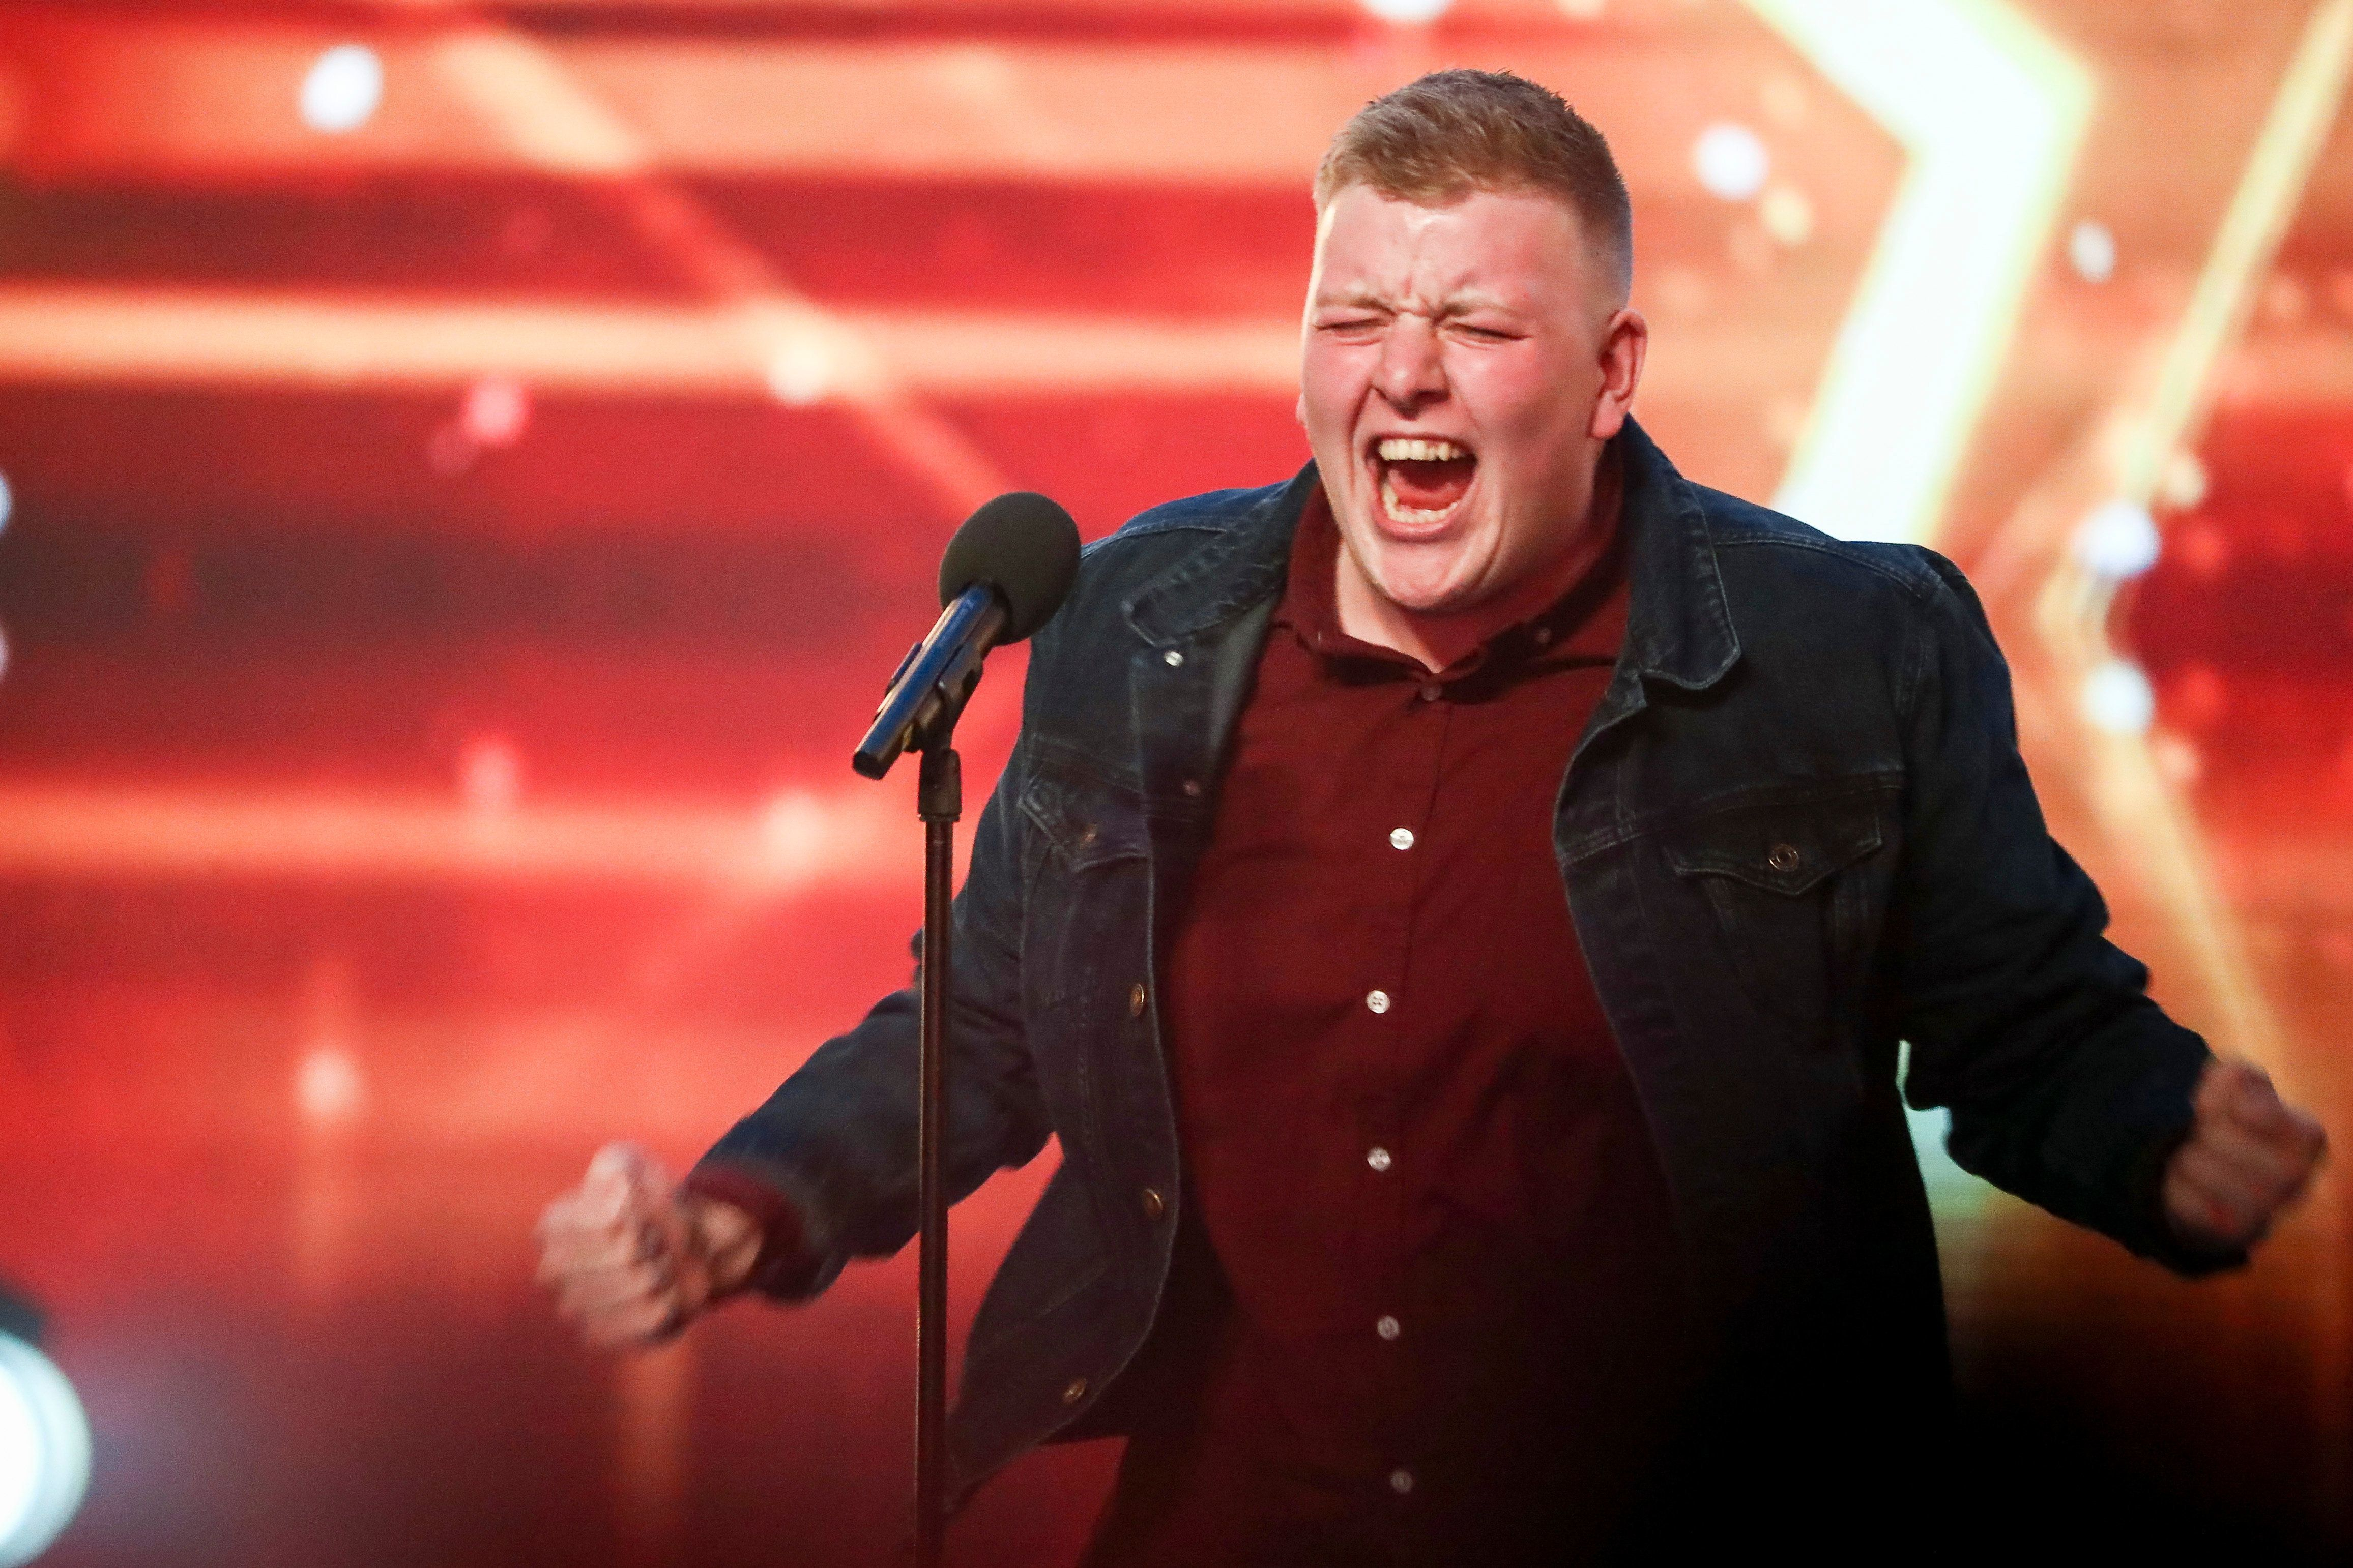 Welsh Singer Wins Final 'Britain's Got Talent' Golden